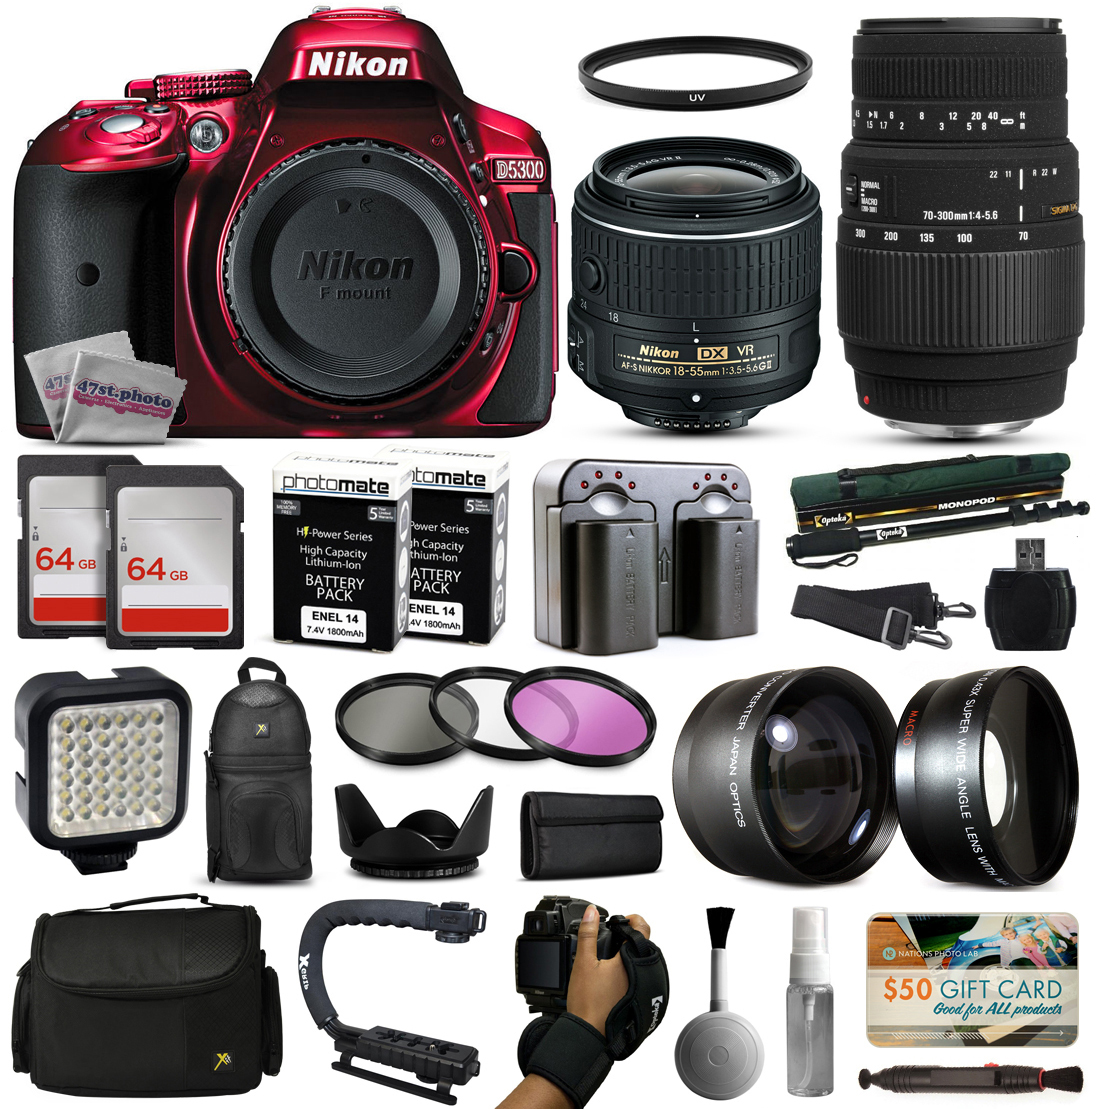 Nikon D5300 Red DSLR Digital Camera + 18-55mm VR II + Sigma 70-300mm Lens + 128GB Memory + (2) Batteries + Charger + LED Video Light + Backpack + Case + Filters + Auxiliary Lenses + $50 Gift Card